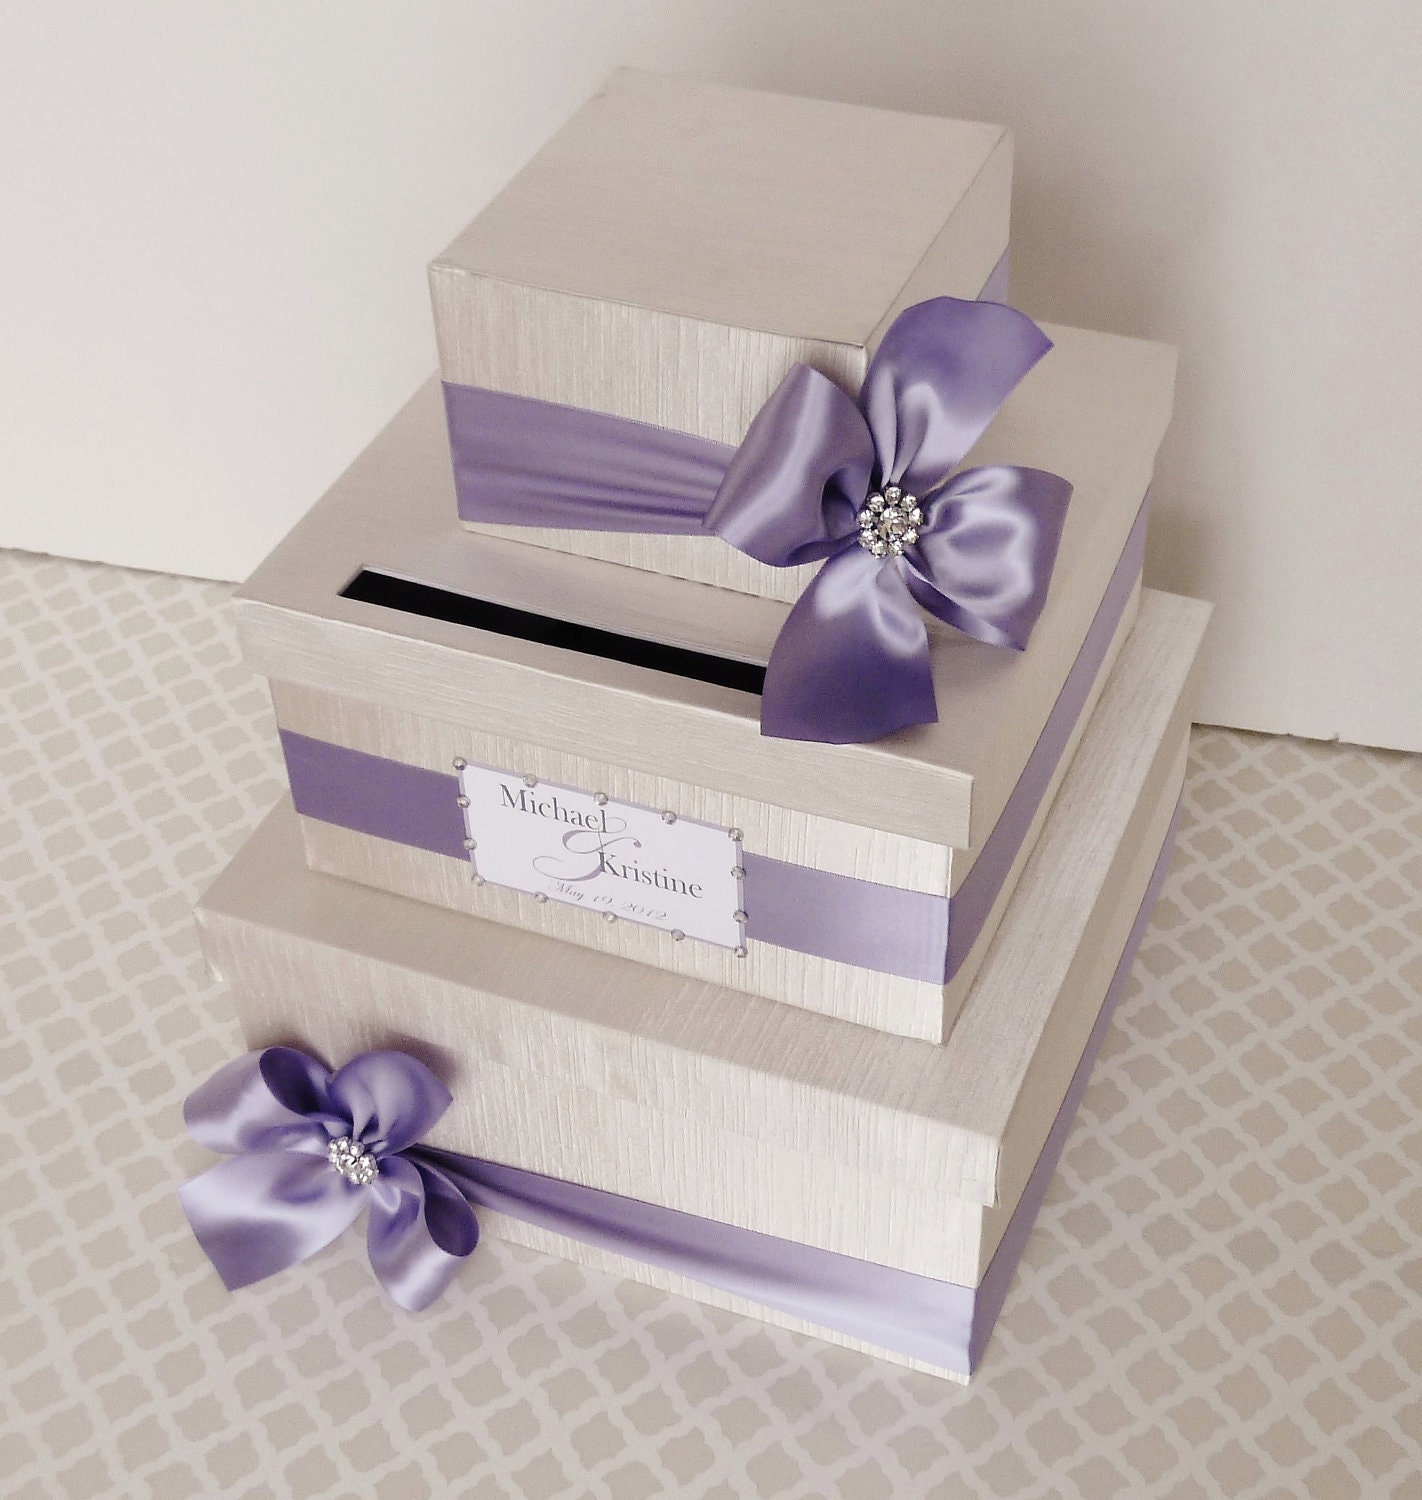 Wedding Gift Box Suggestions : Custom Made WEDDING CARD BOX Money Holder Purple Wisteria